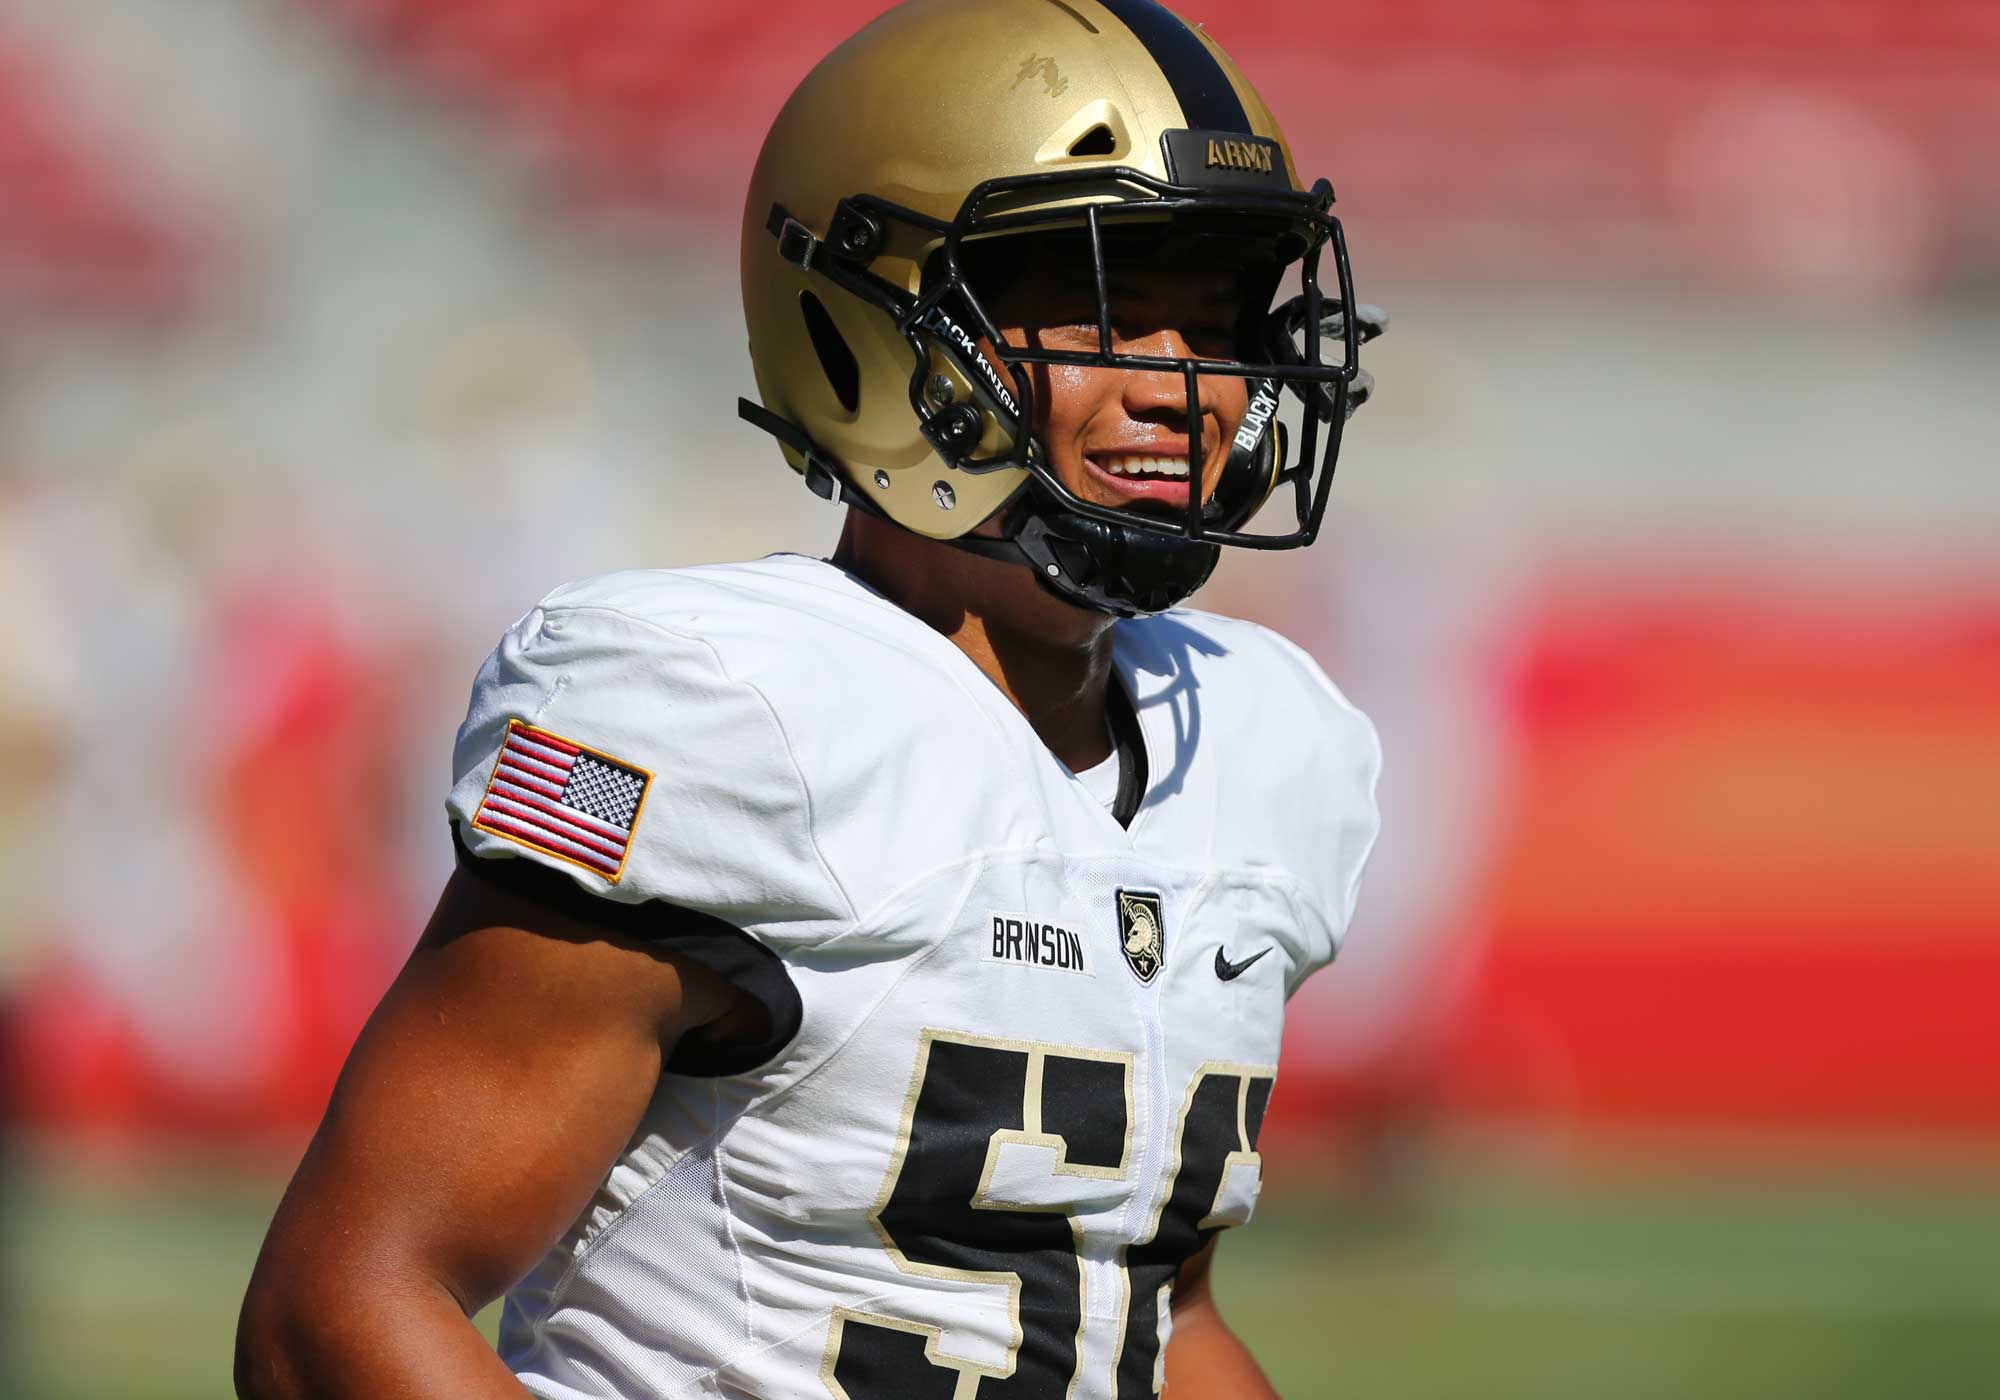 Army stark contrast to players skipping bowls